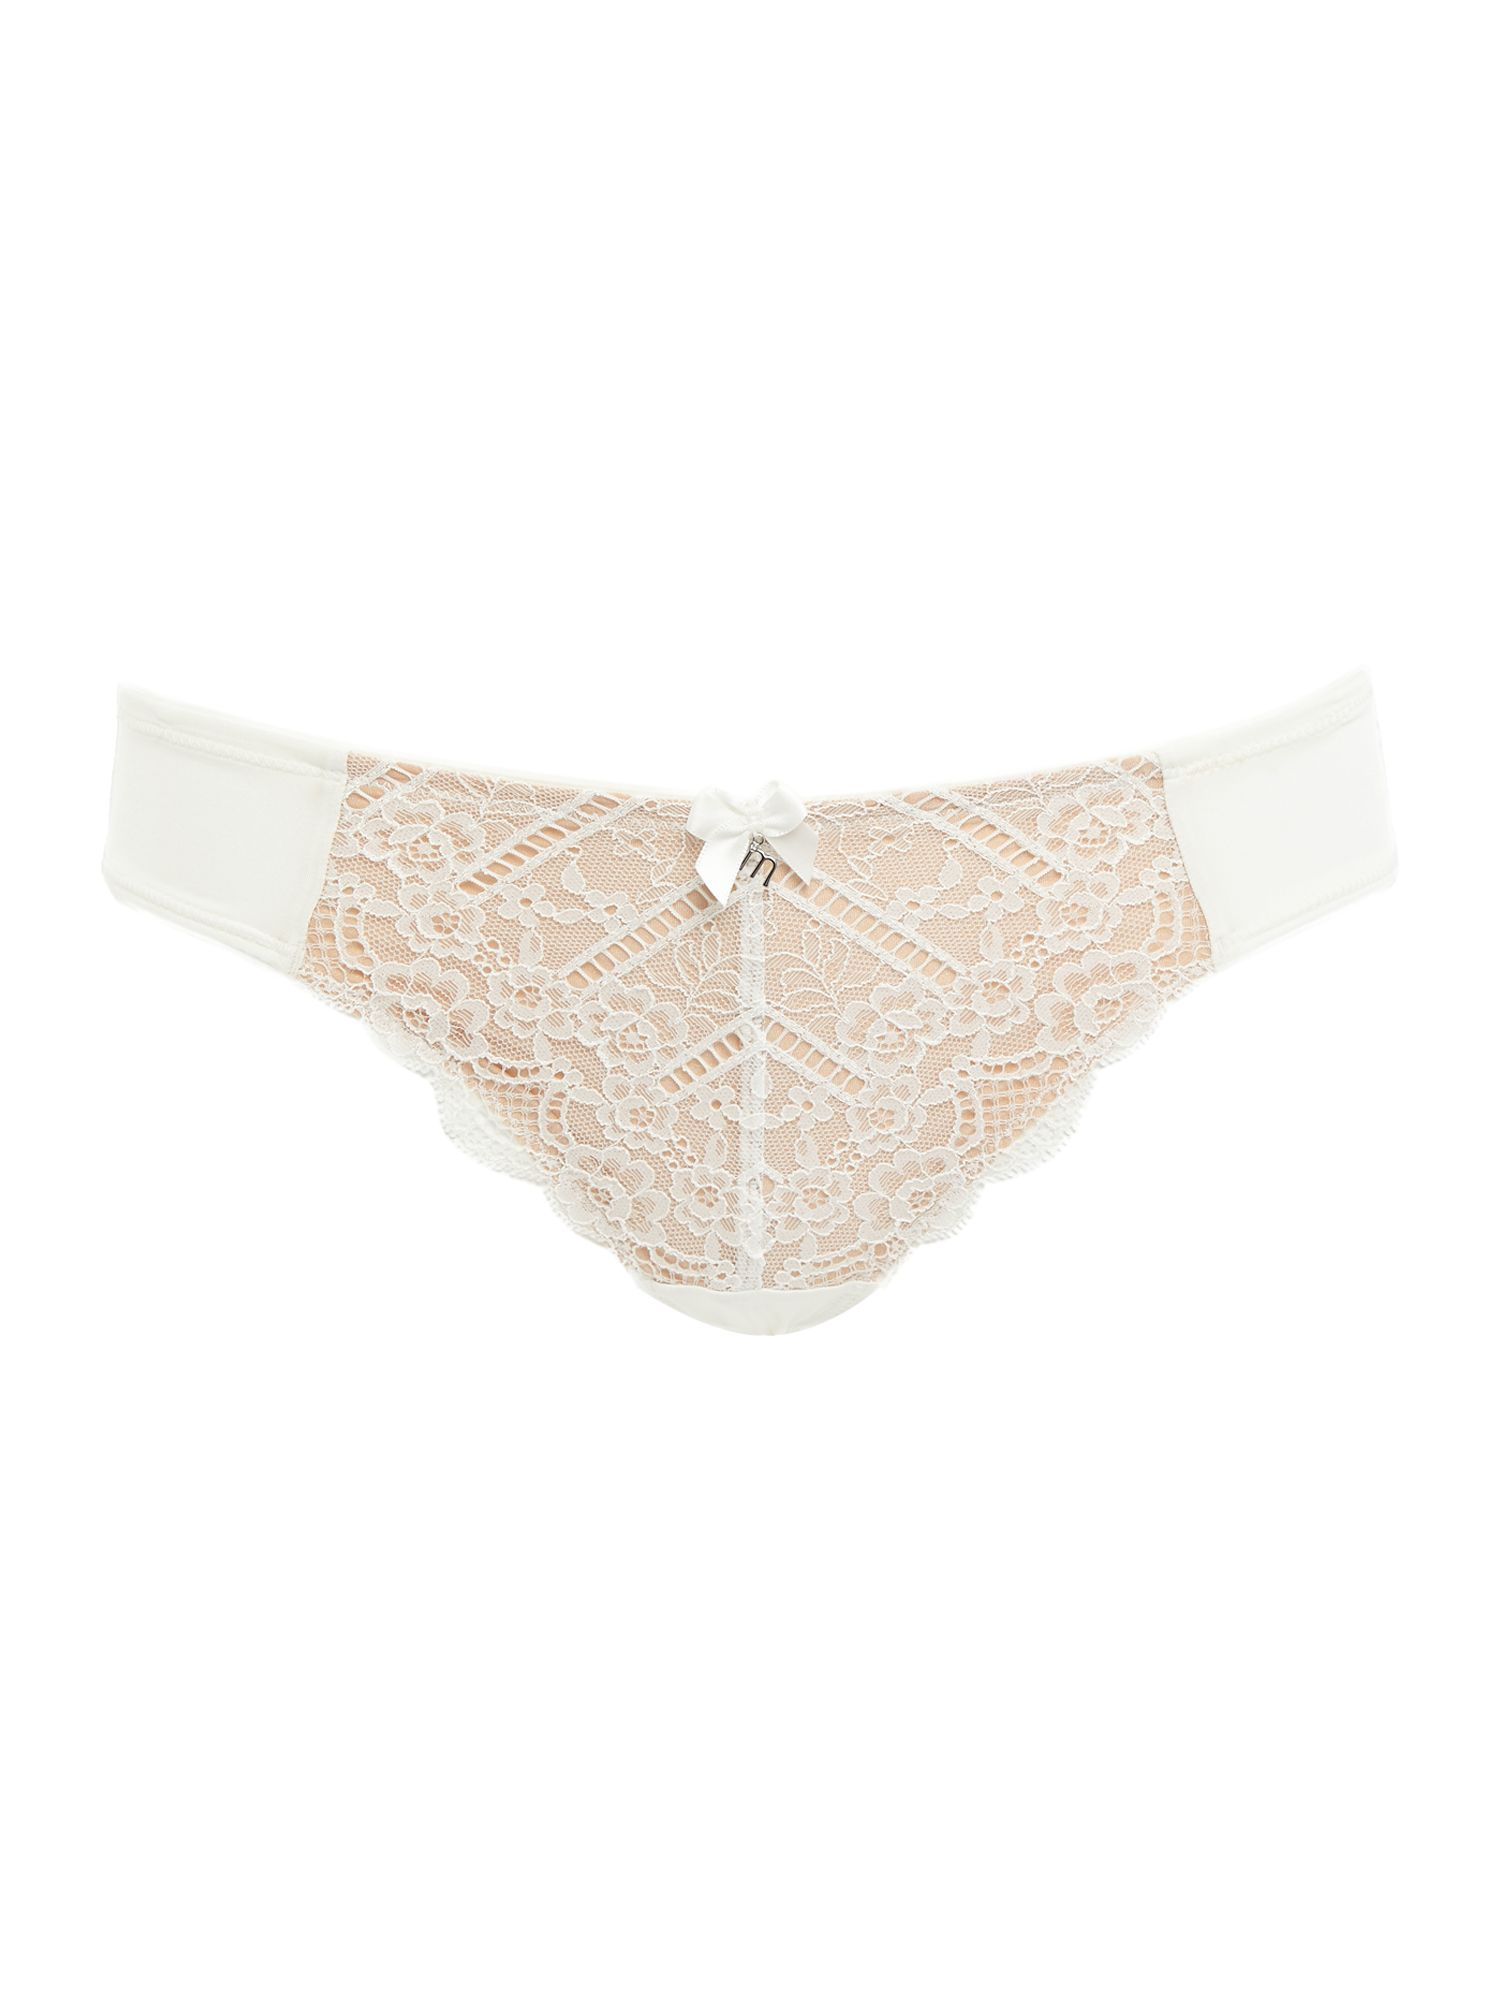 Marie Meili Marie Meili Curves pailey lace brief, Ivory